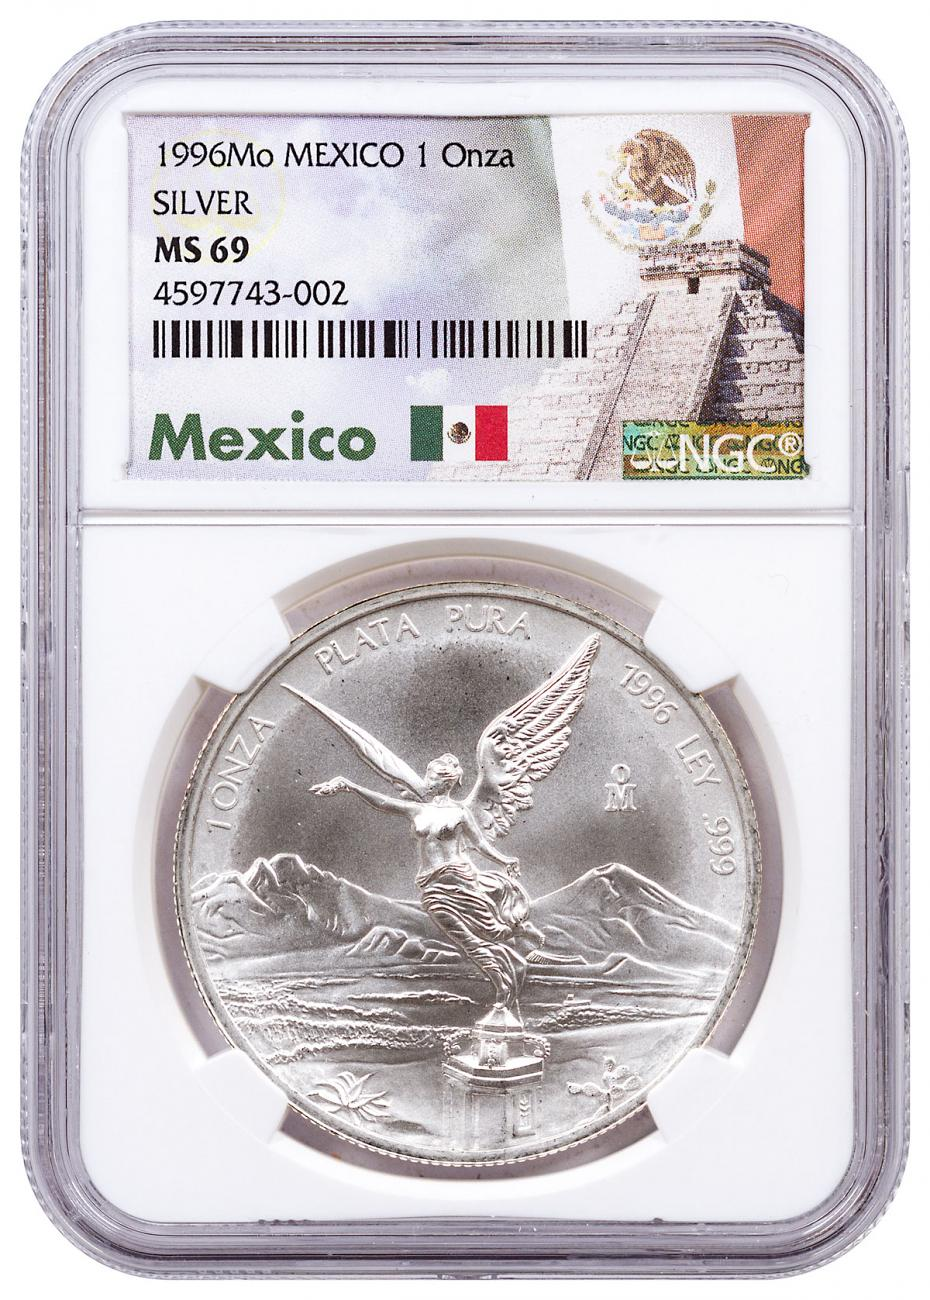 1996-Mo Mexico 1 oz Silver Libertad Coin NGC MS69 Exclusive Mexico Label